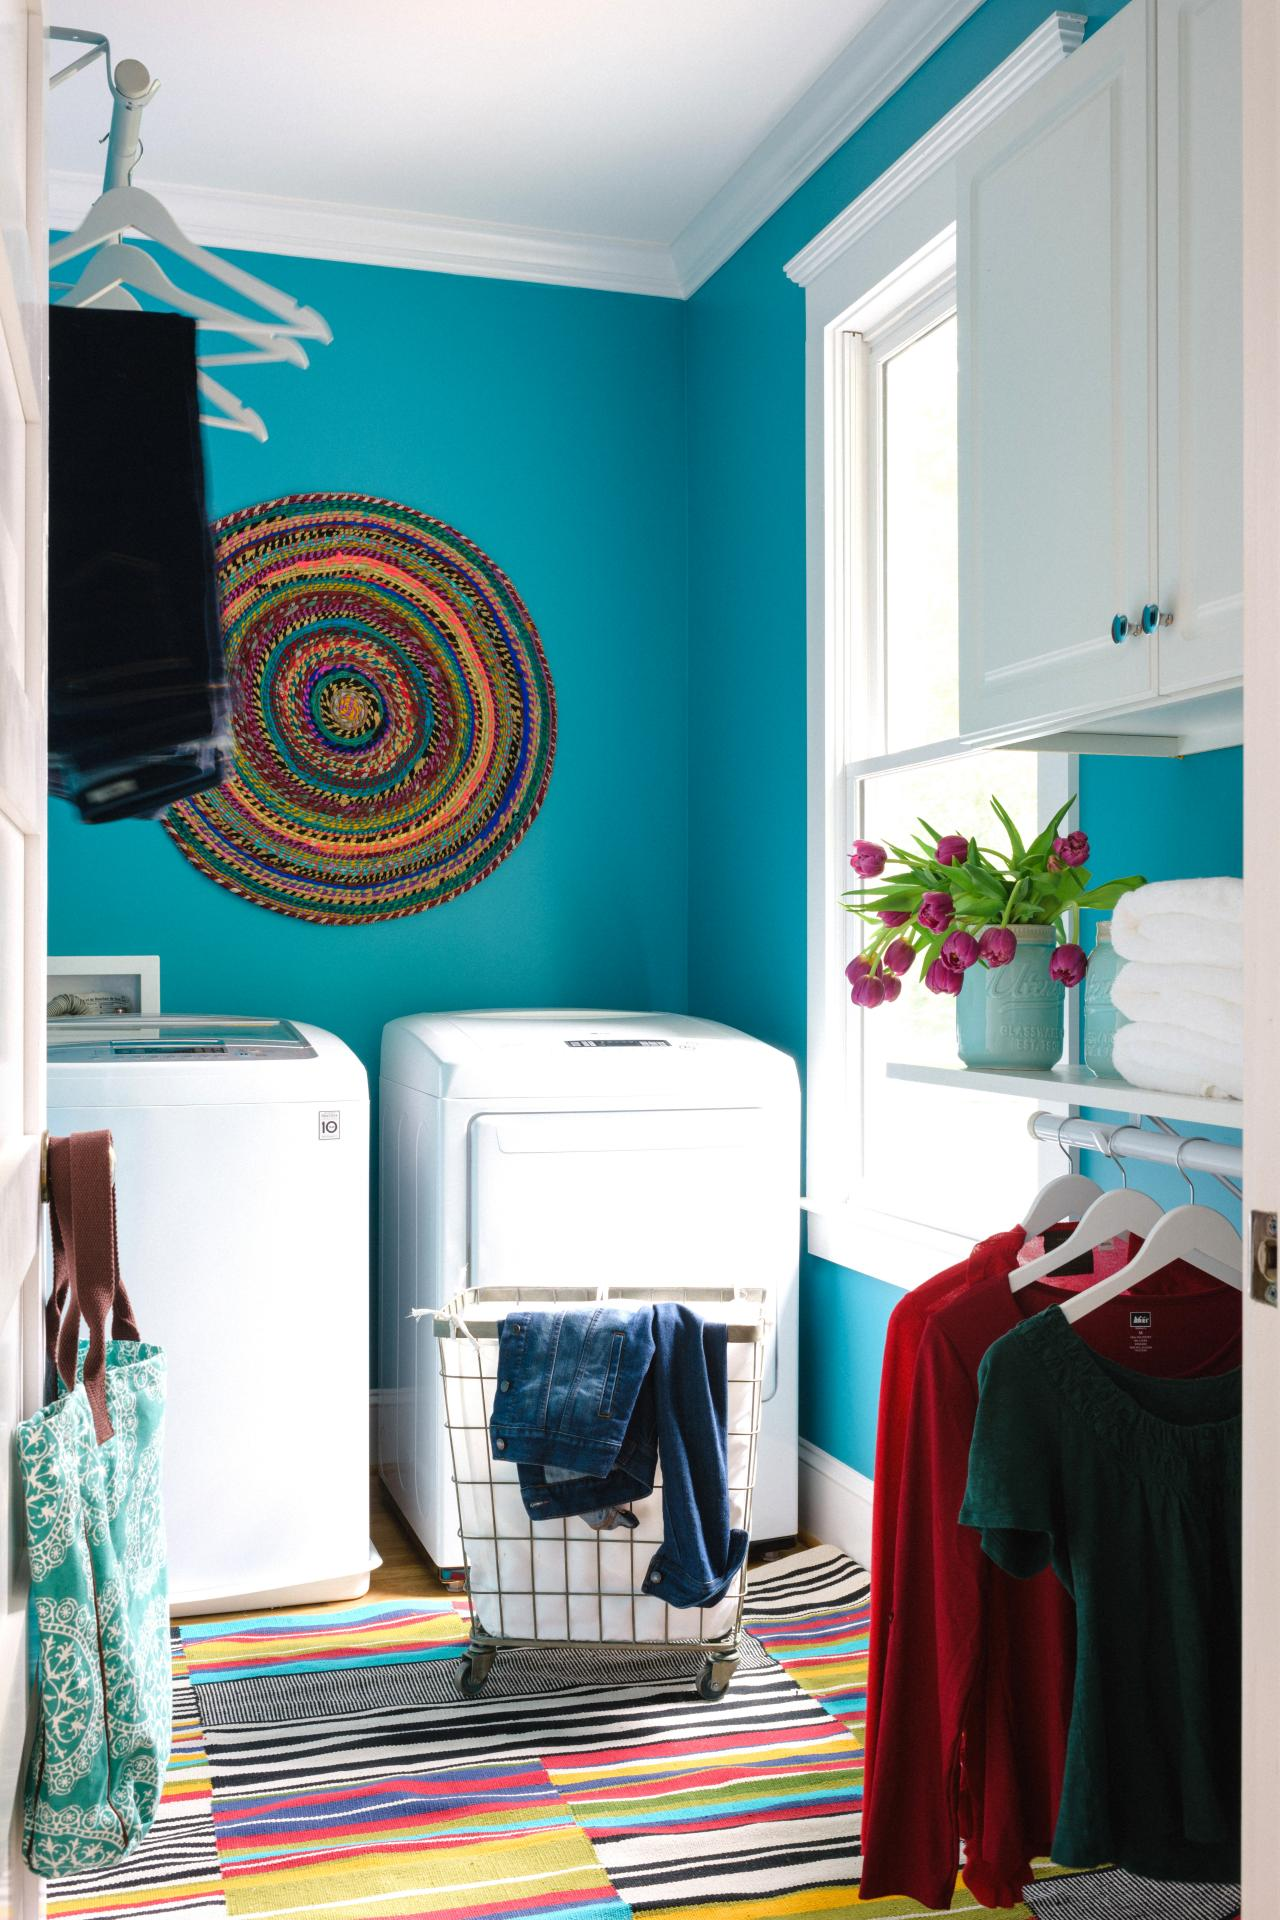 10 Easy Budget Friendly Laundry Room Updates HGTVs